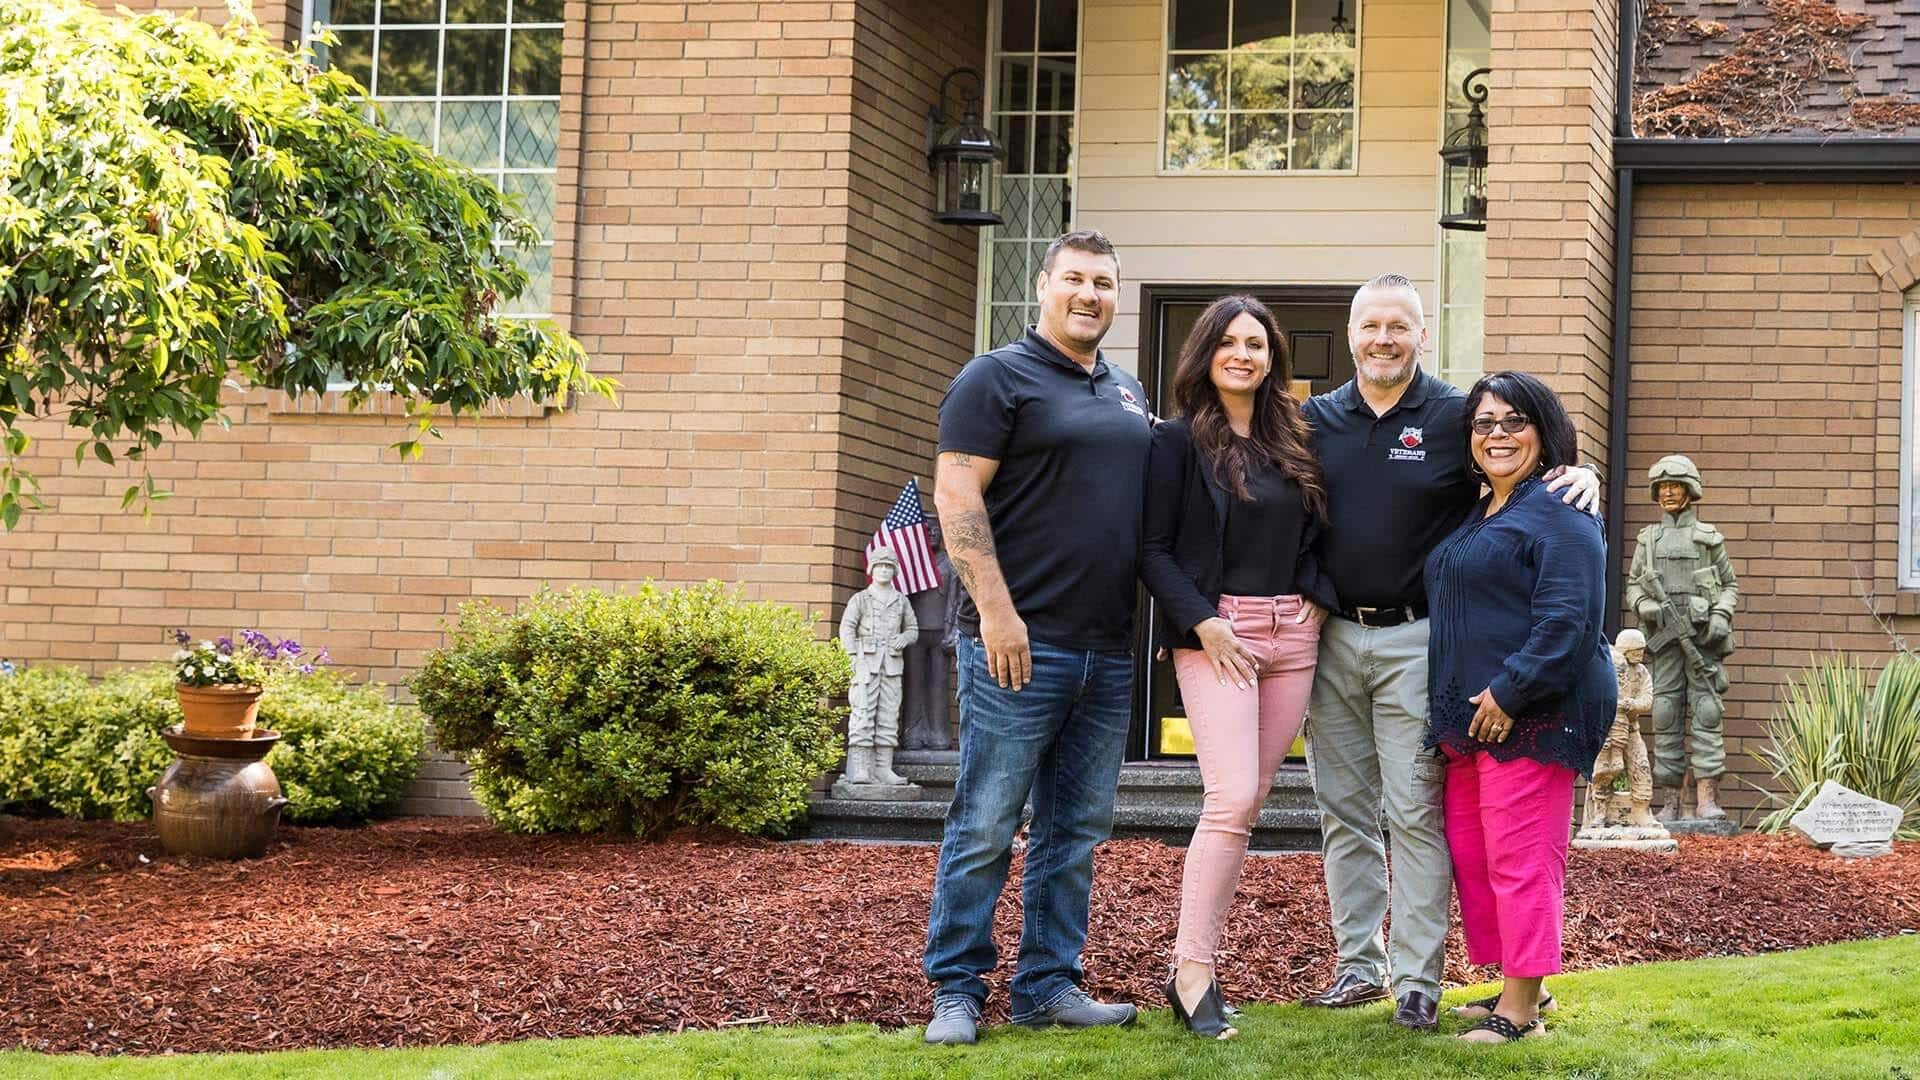 Mike Villano, Brooke Villano, SEAC(R) John Wayne Troxell and Sandra Troxell all stand smiling in front of the Troxell home after using the VA Home Loan.